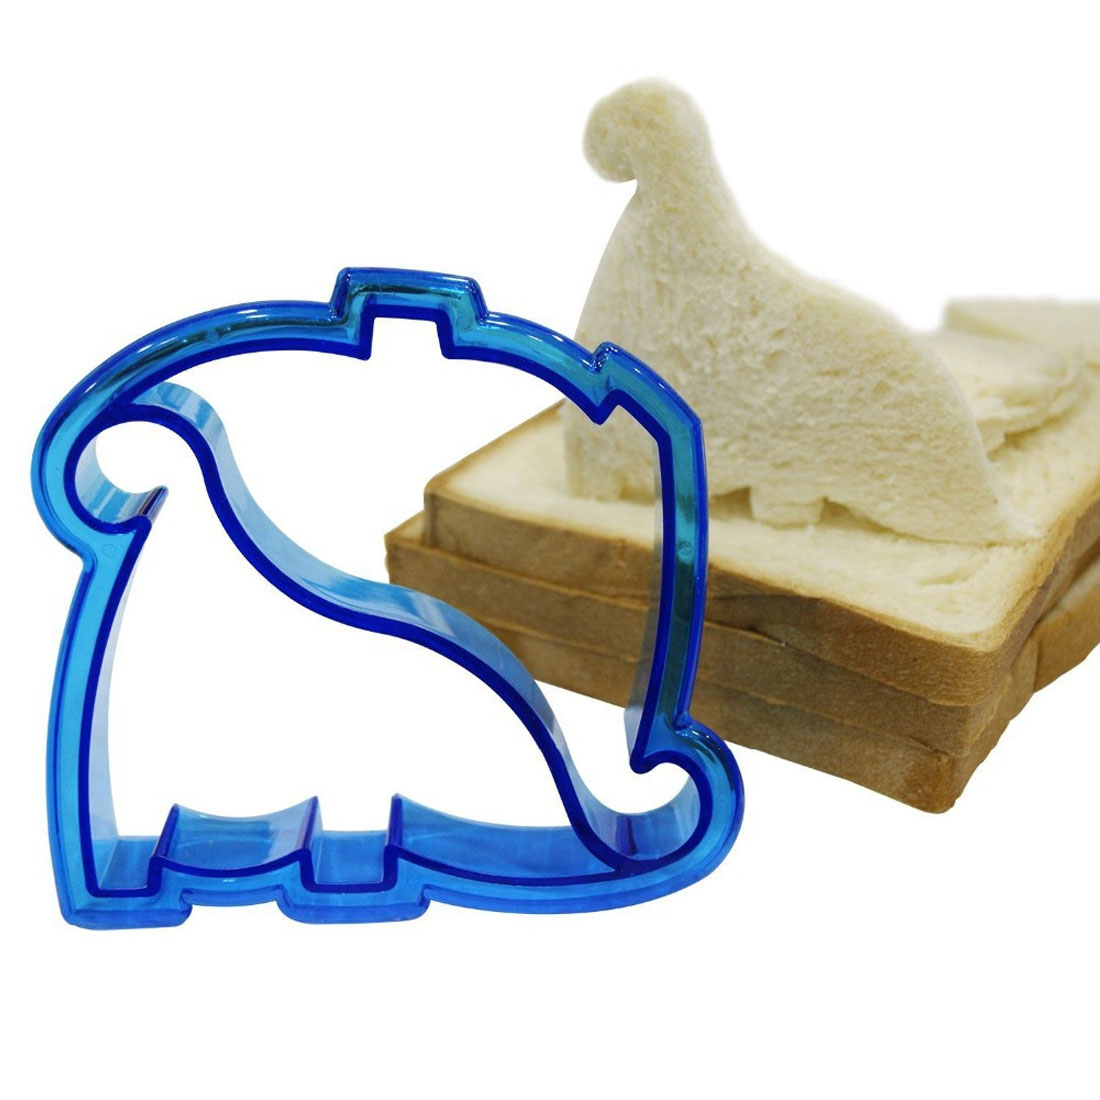 Image 5 - HOT 1PC Kitchen Baking Tools Sandwich Mould Cutter Bear Car Dog Shape Baking Cake Bread Toast Mould Maker-in Baking & Pastry Tools from Home & Garden